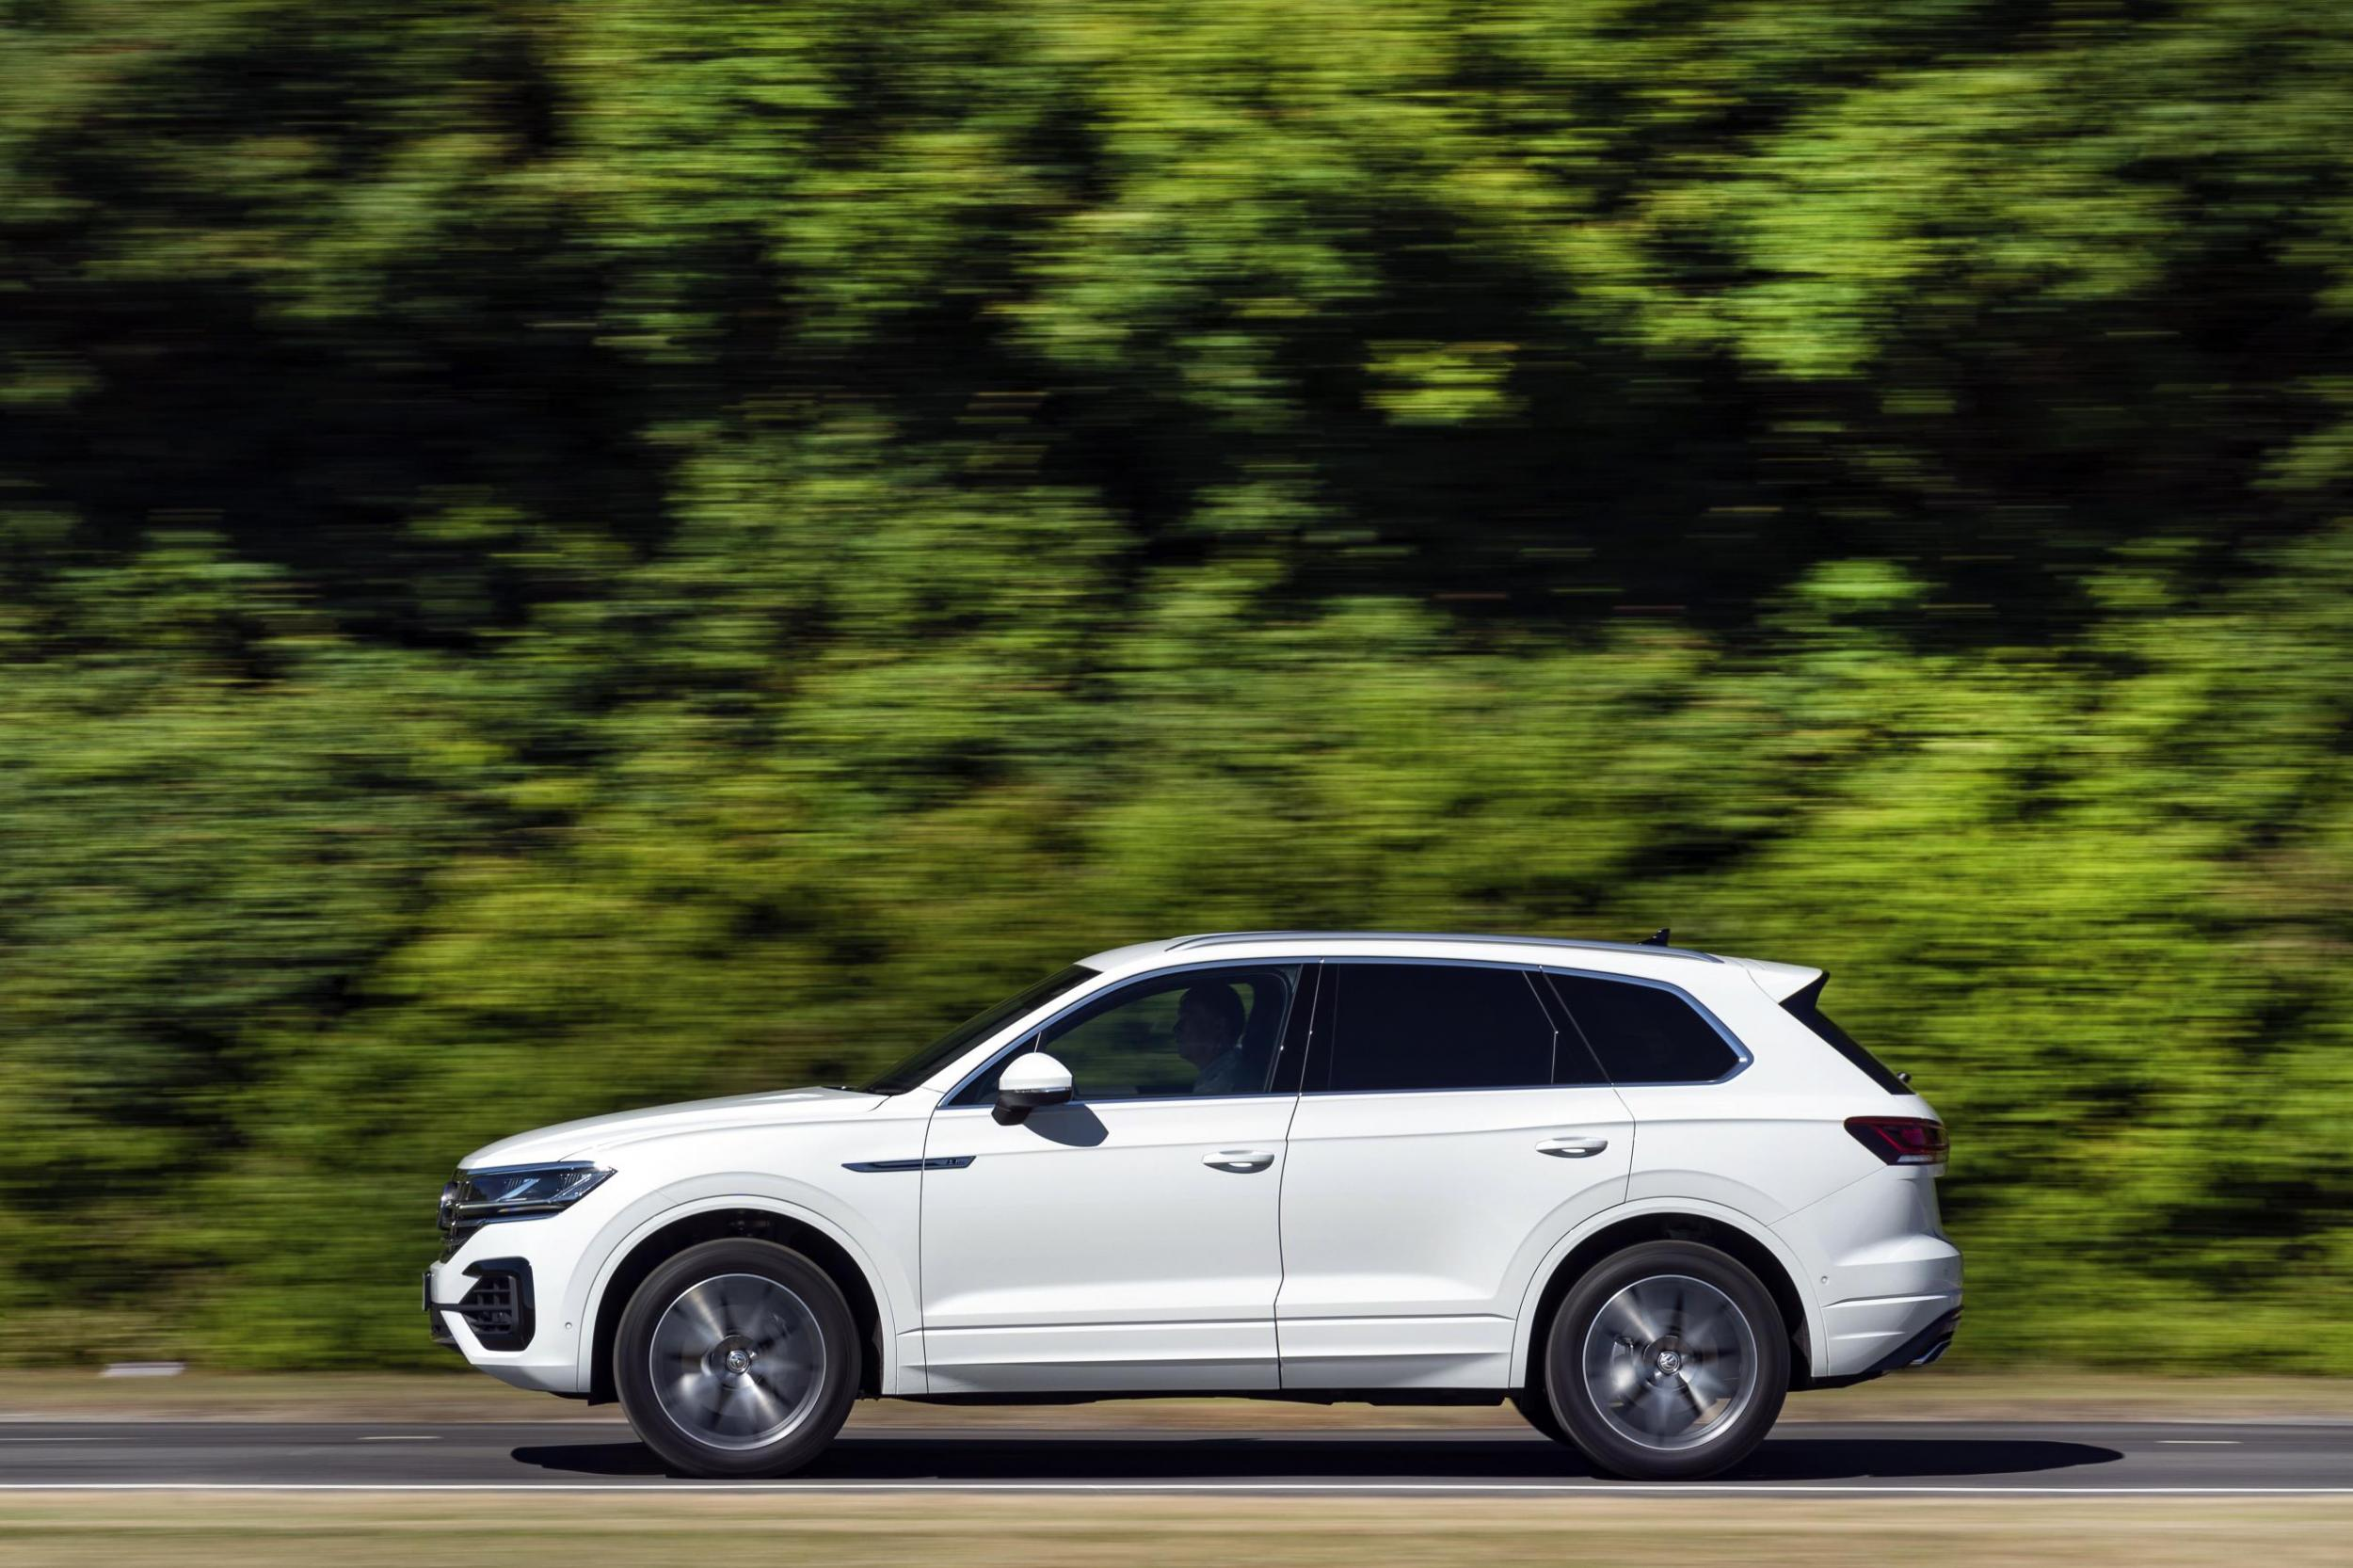 Volkswagen Touareg SUV review: Greenpeace's worst nightmare